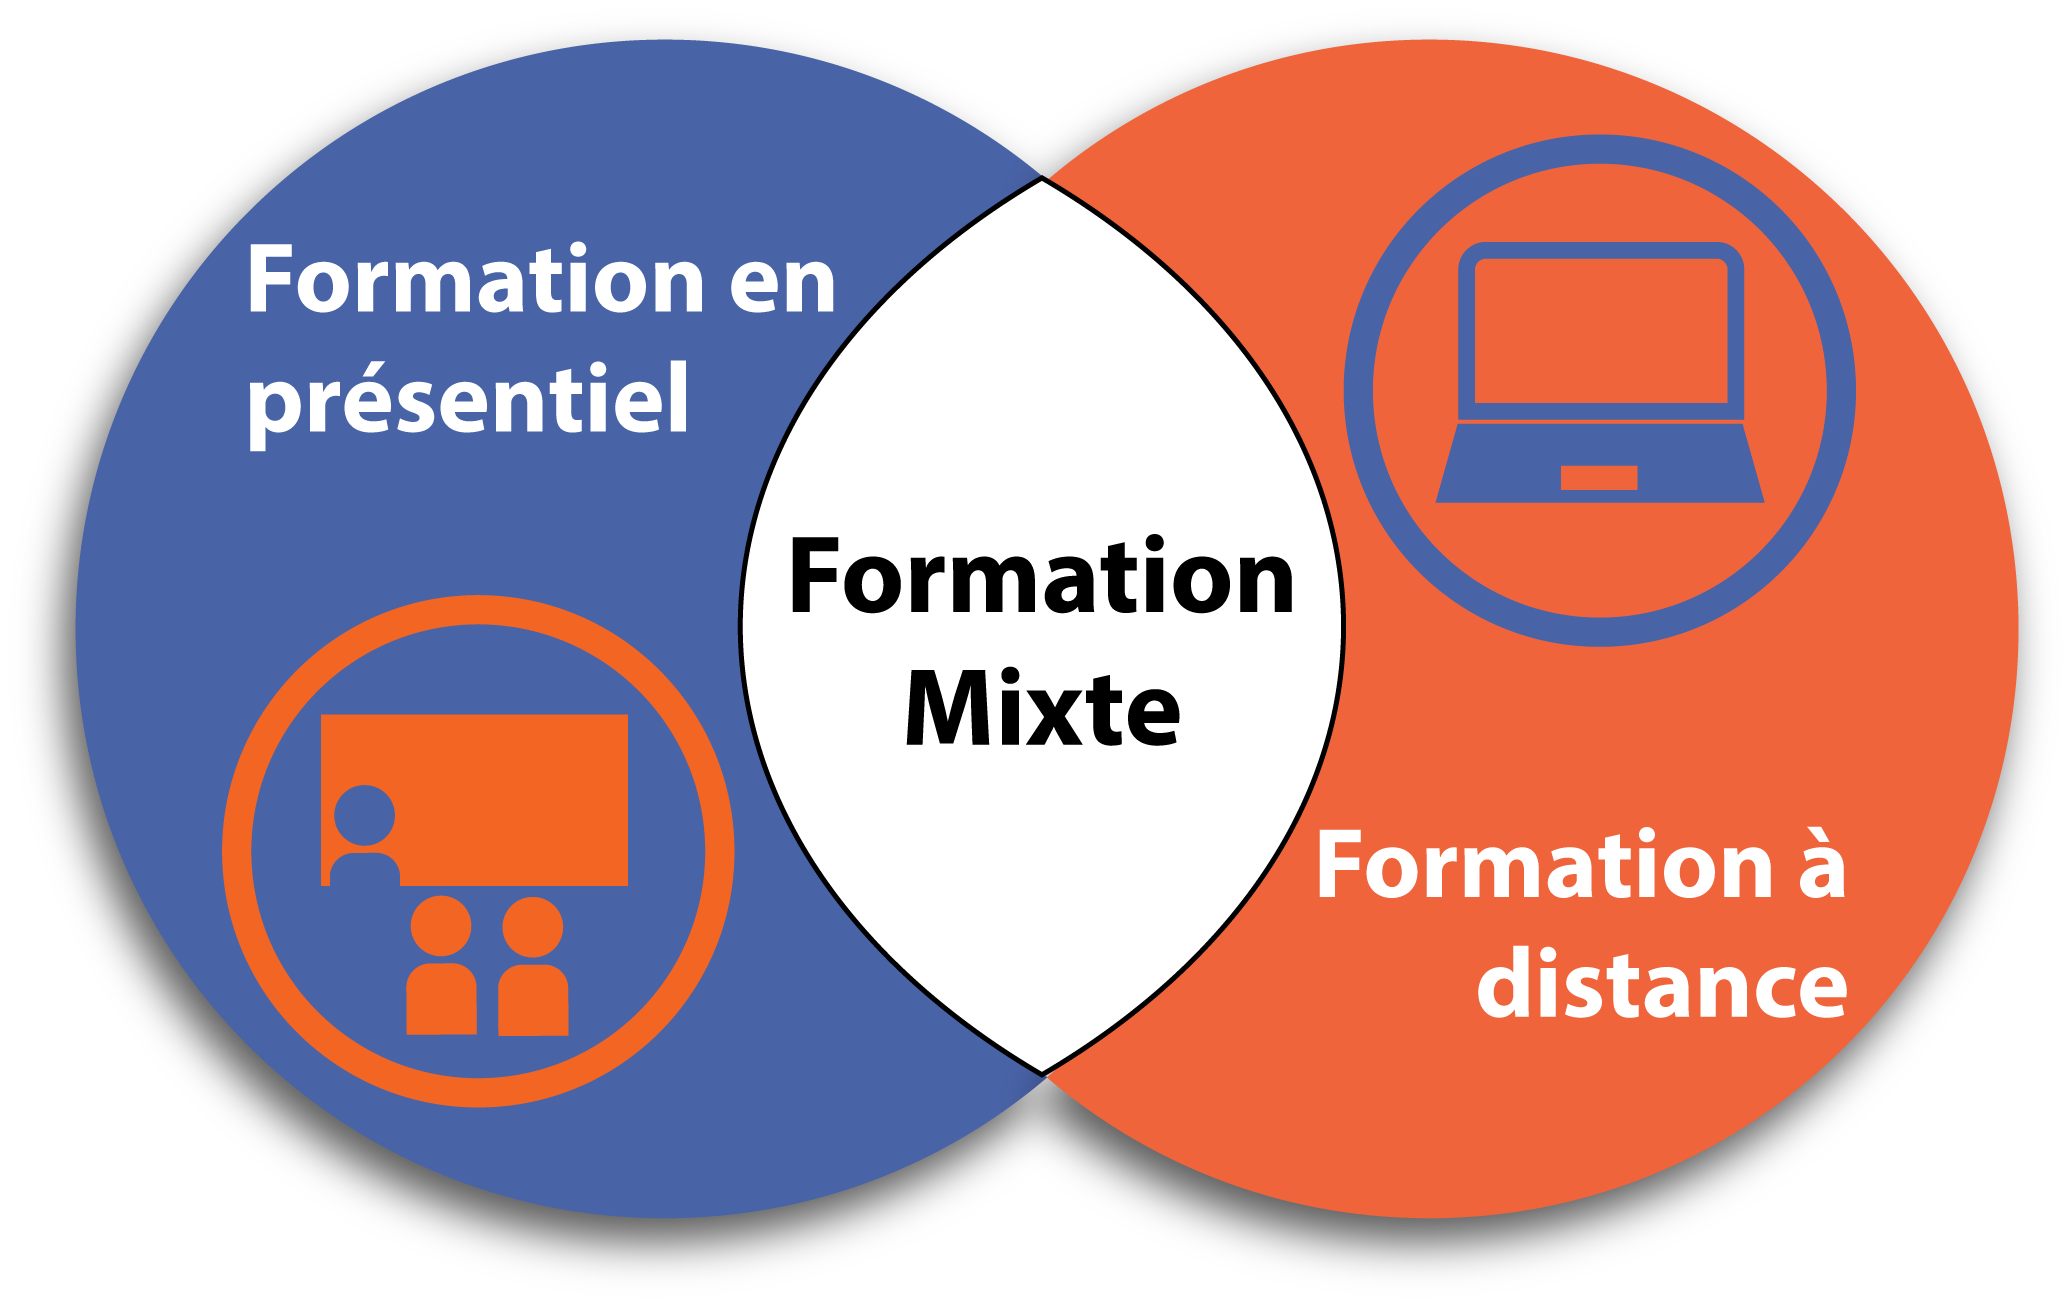 Formation mixte